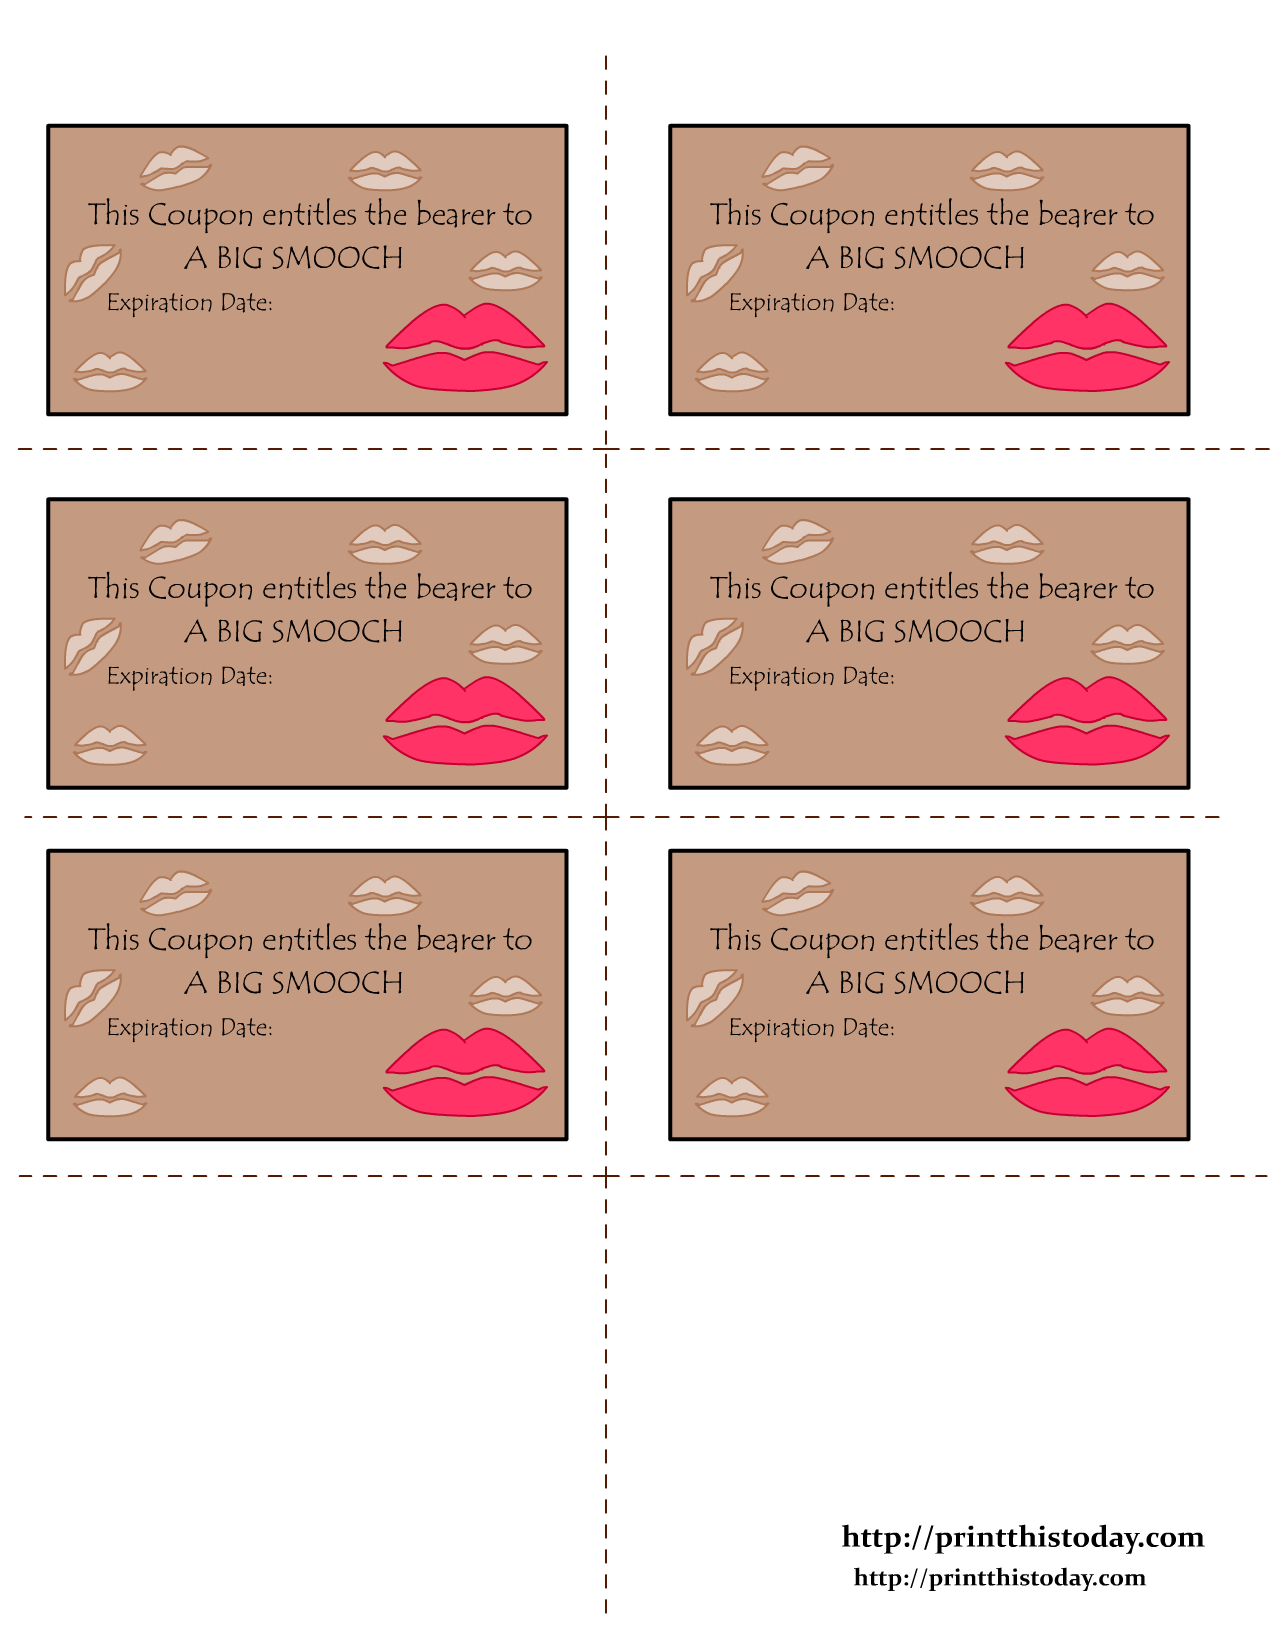 Free Printable Valentine Coupons | Date Night | Love Coupons, Love - Love Coupons For Him Printable Free